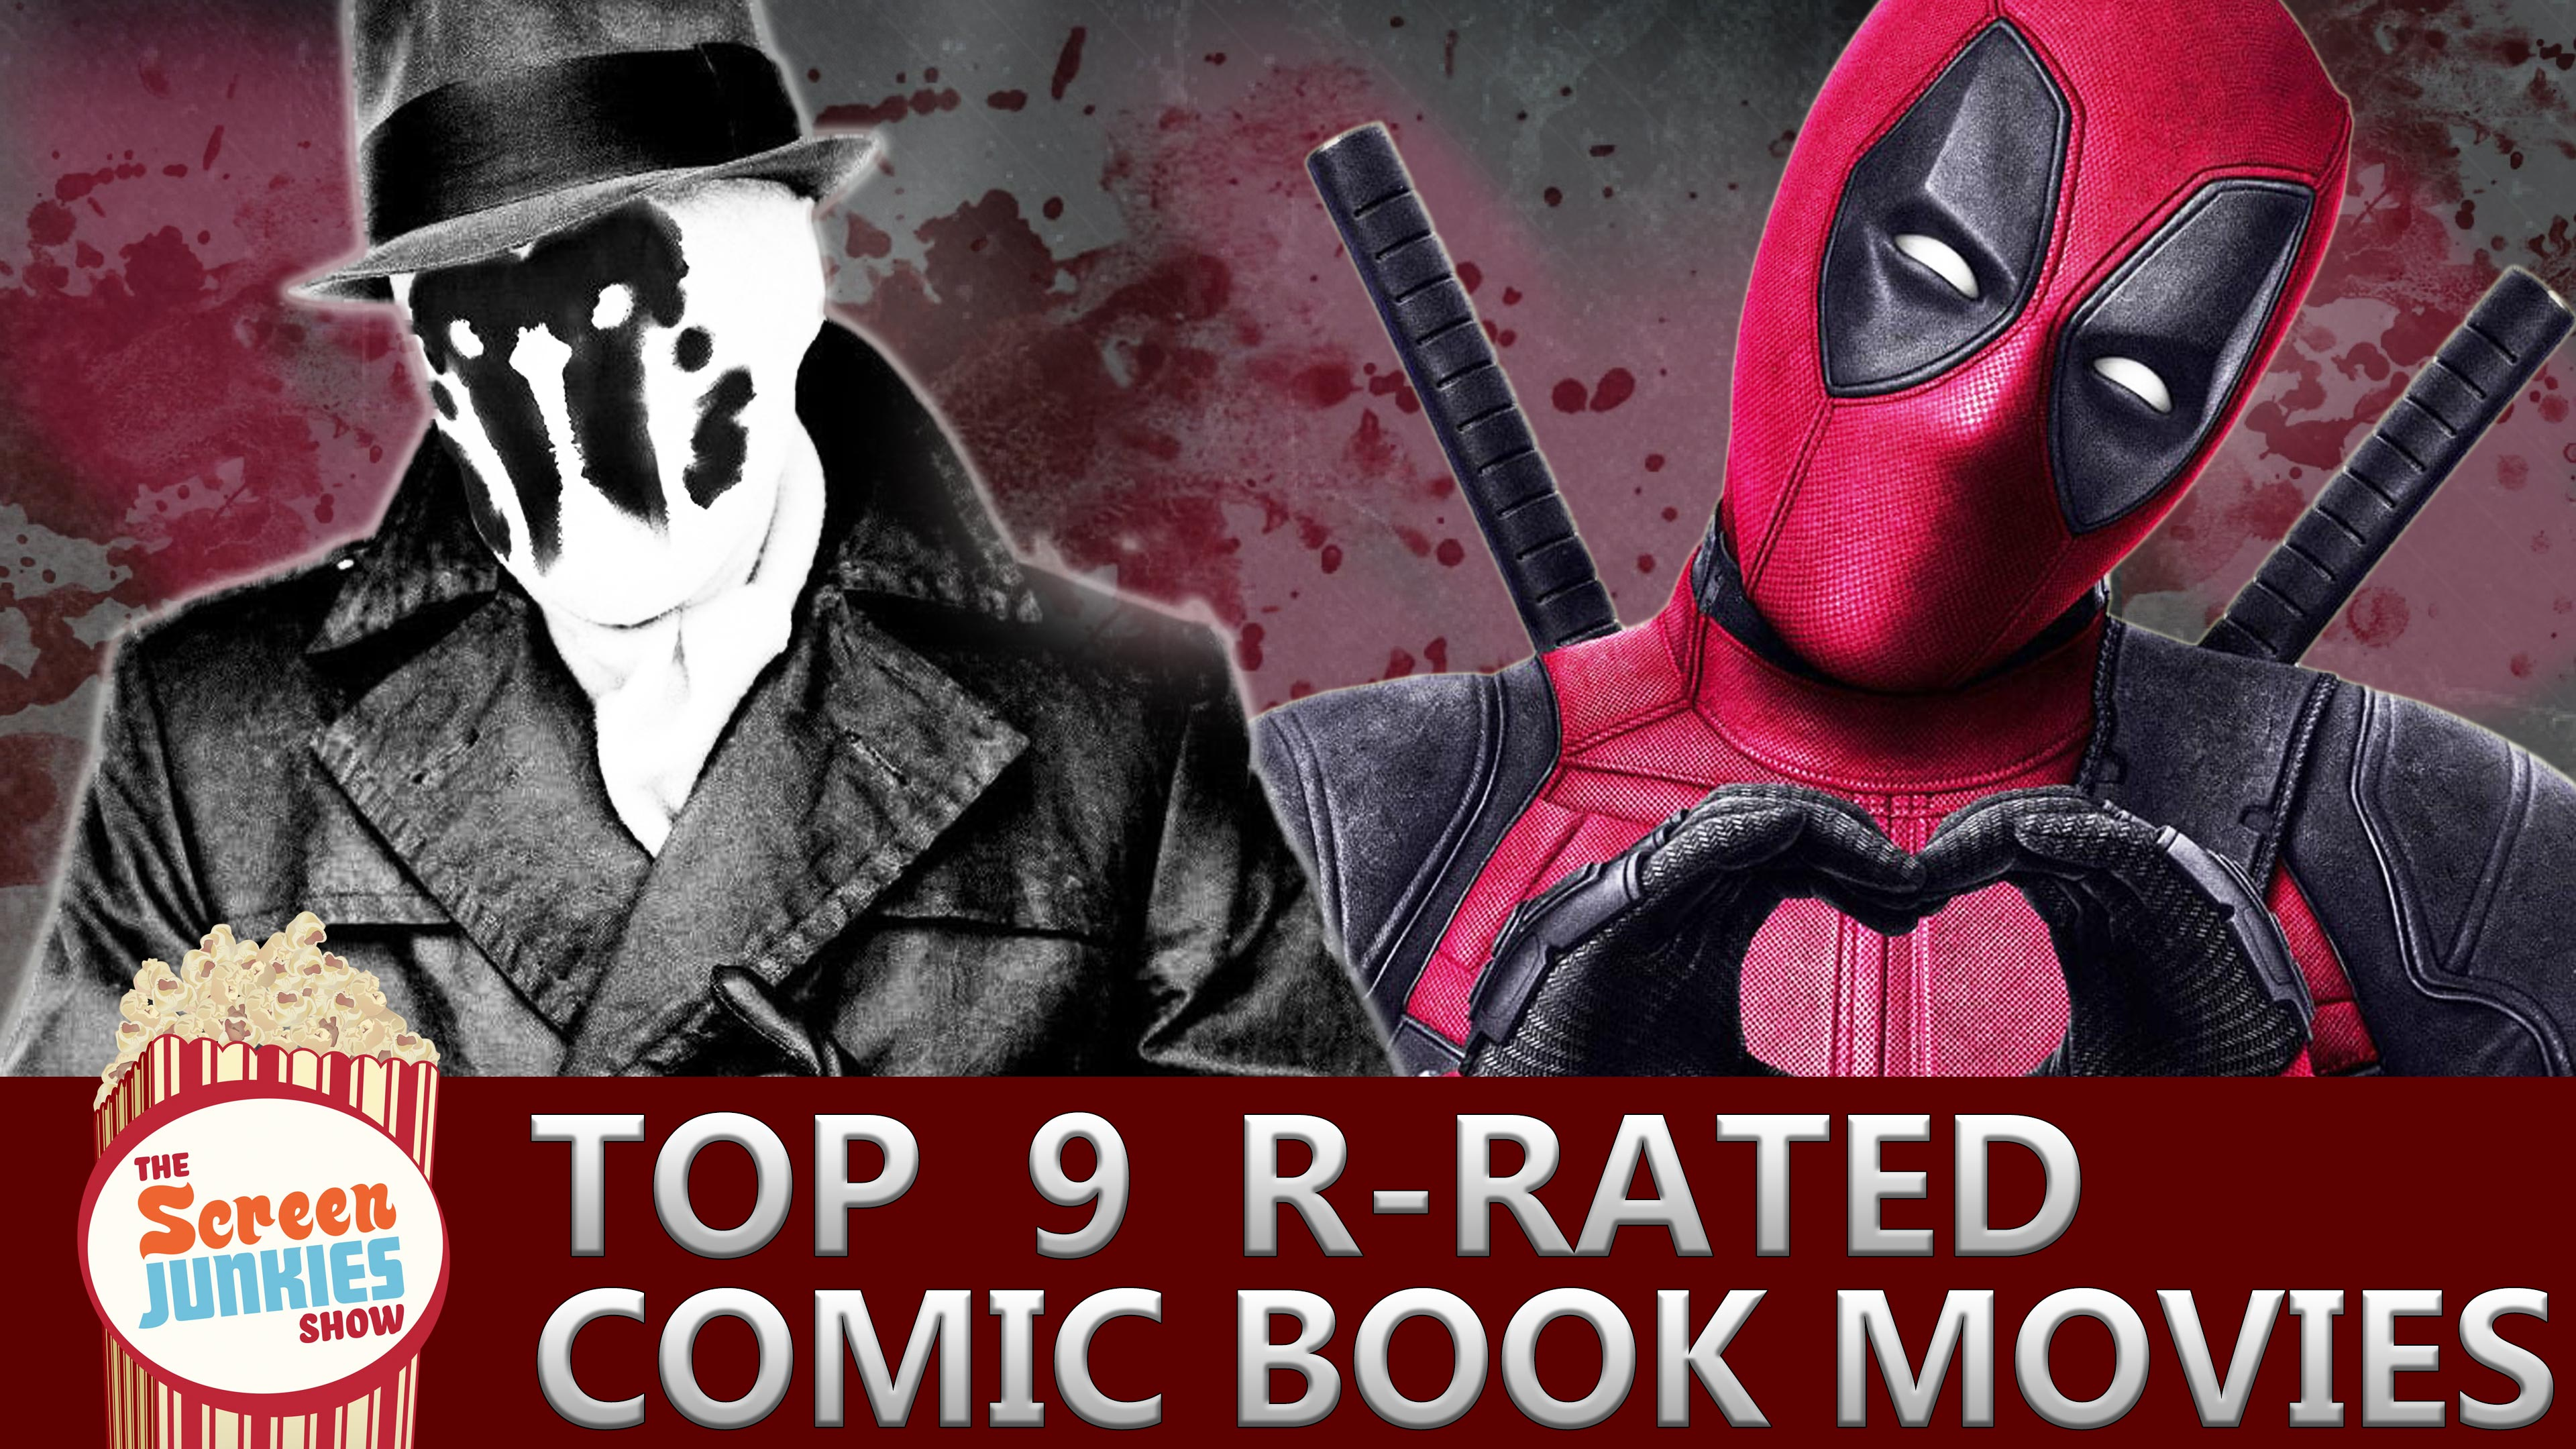 Top 9 R-Rated Comic Book Movies